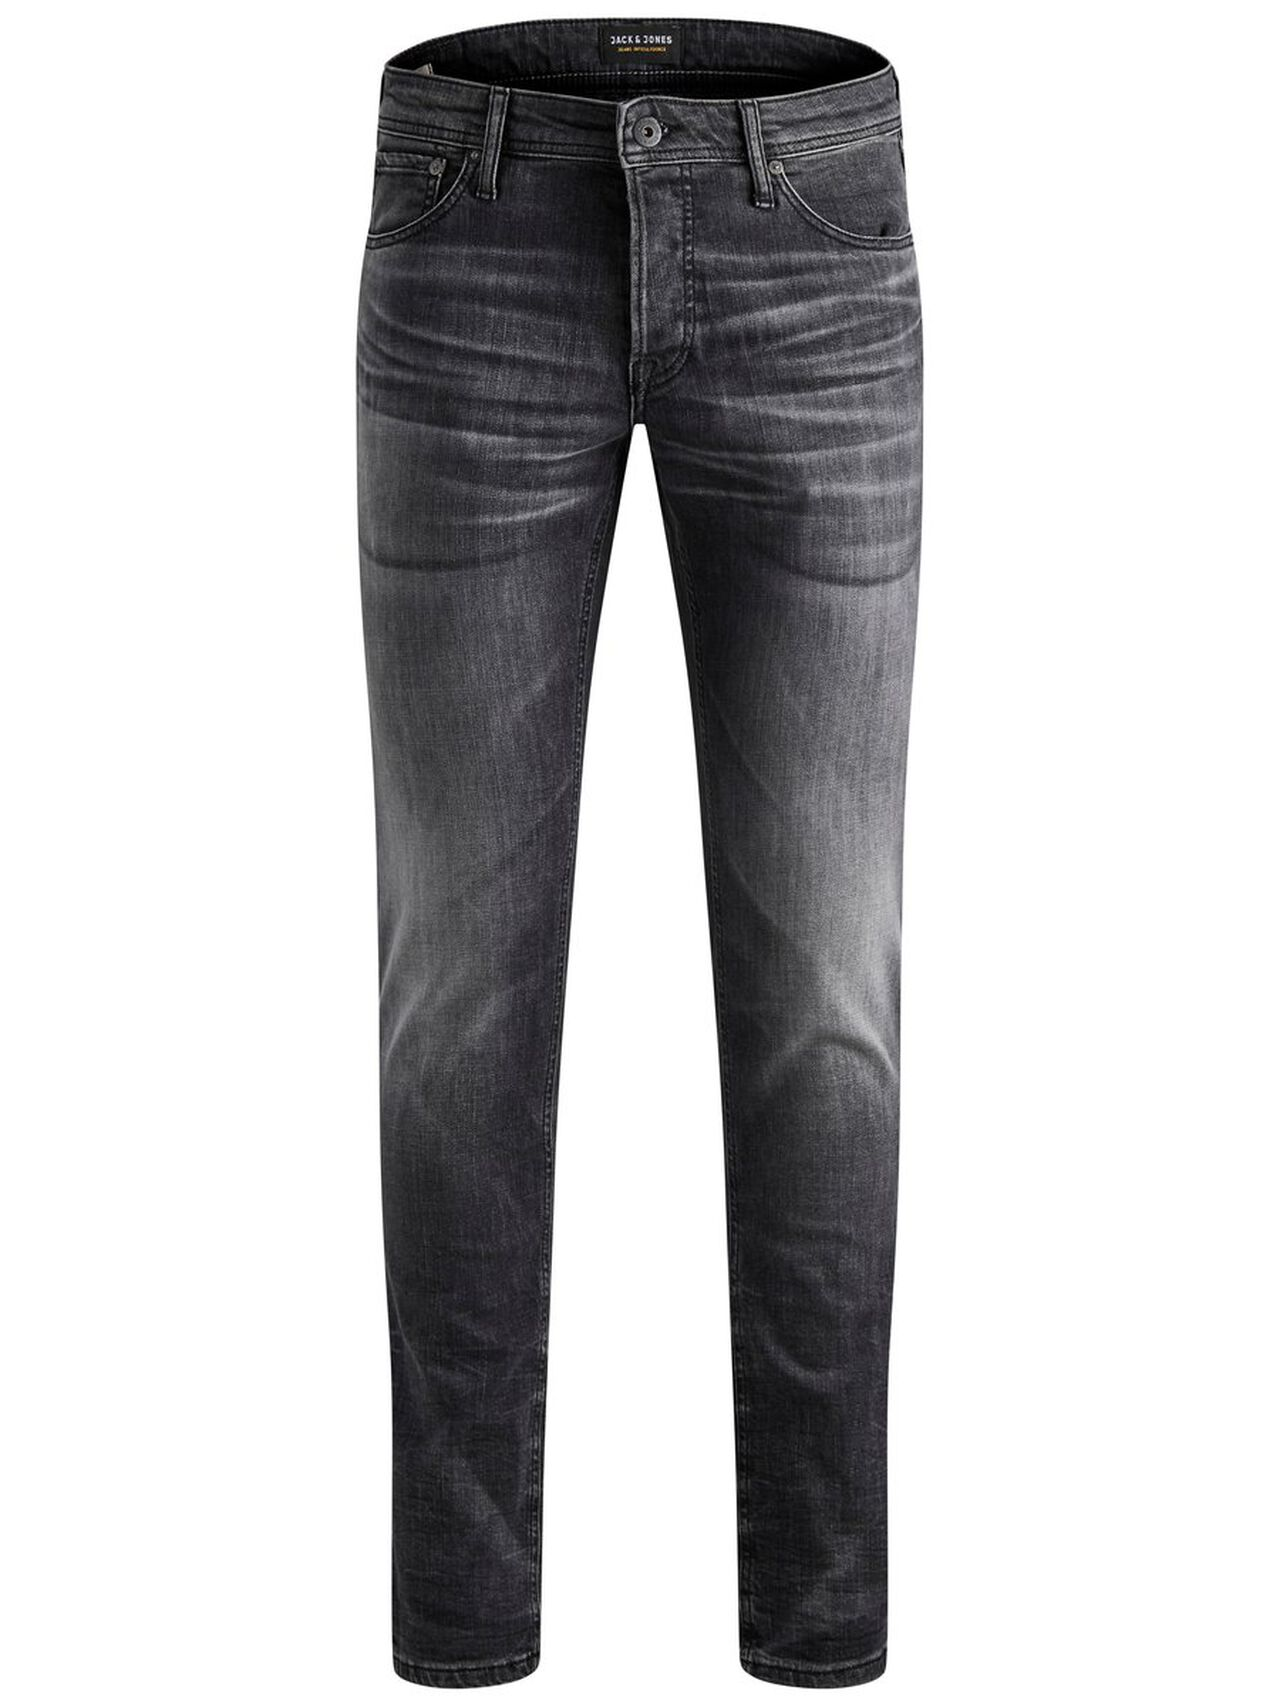 JACK & JONES Glenn Original Jj 787 Sts Slim Fit Jeans Men black